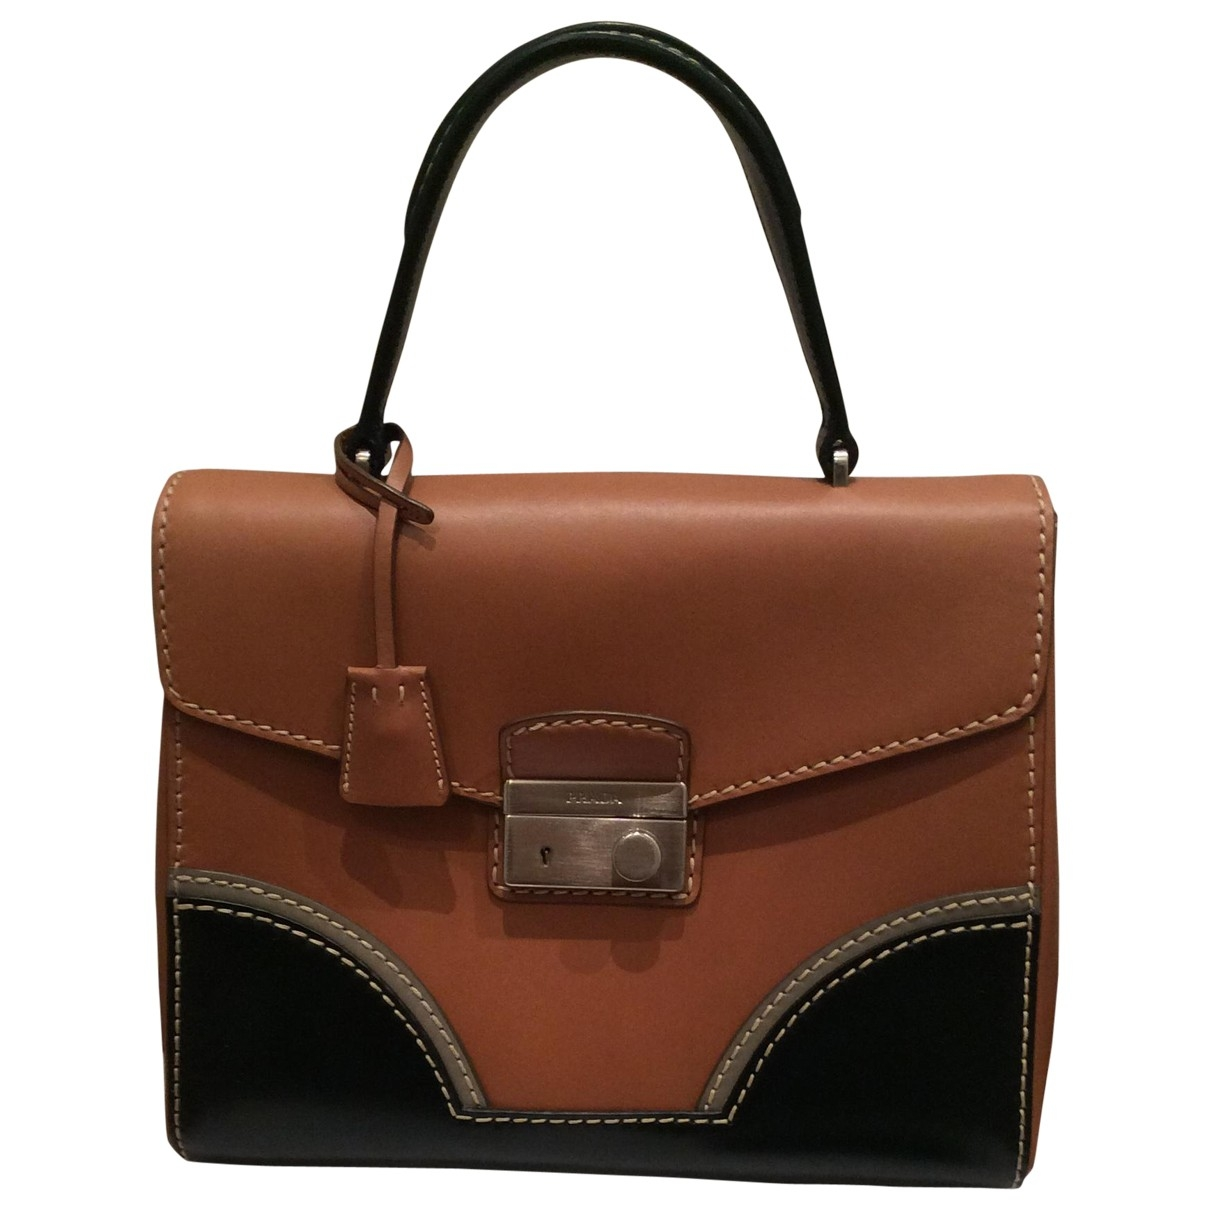 Prada \N Camel Leather handbag for Women \N